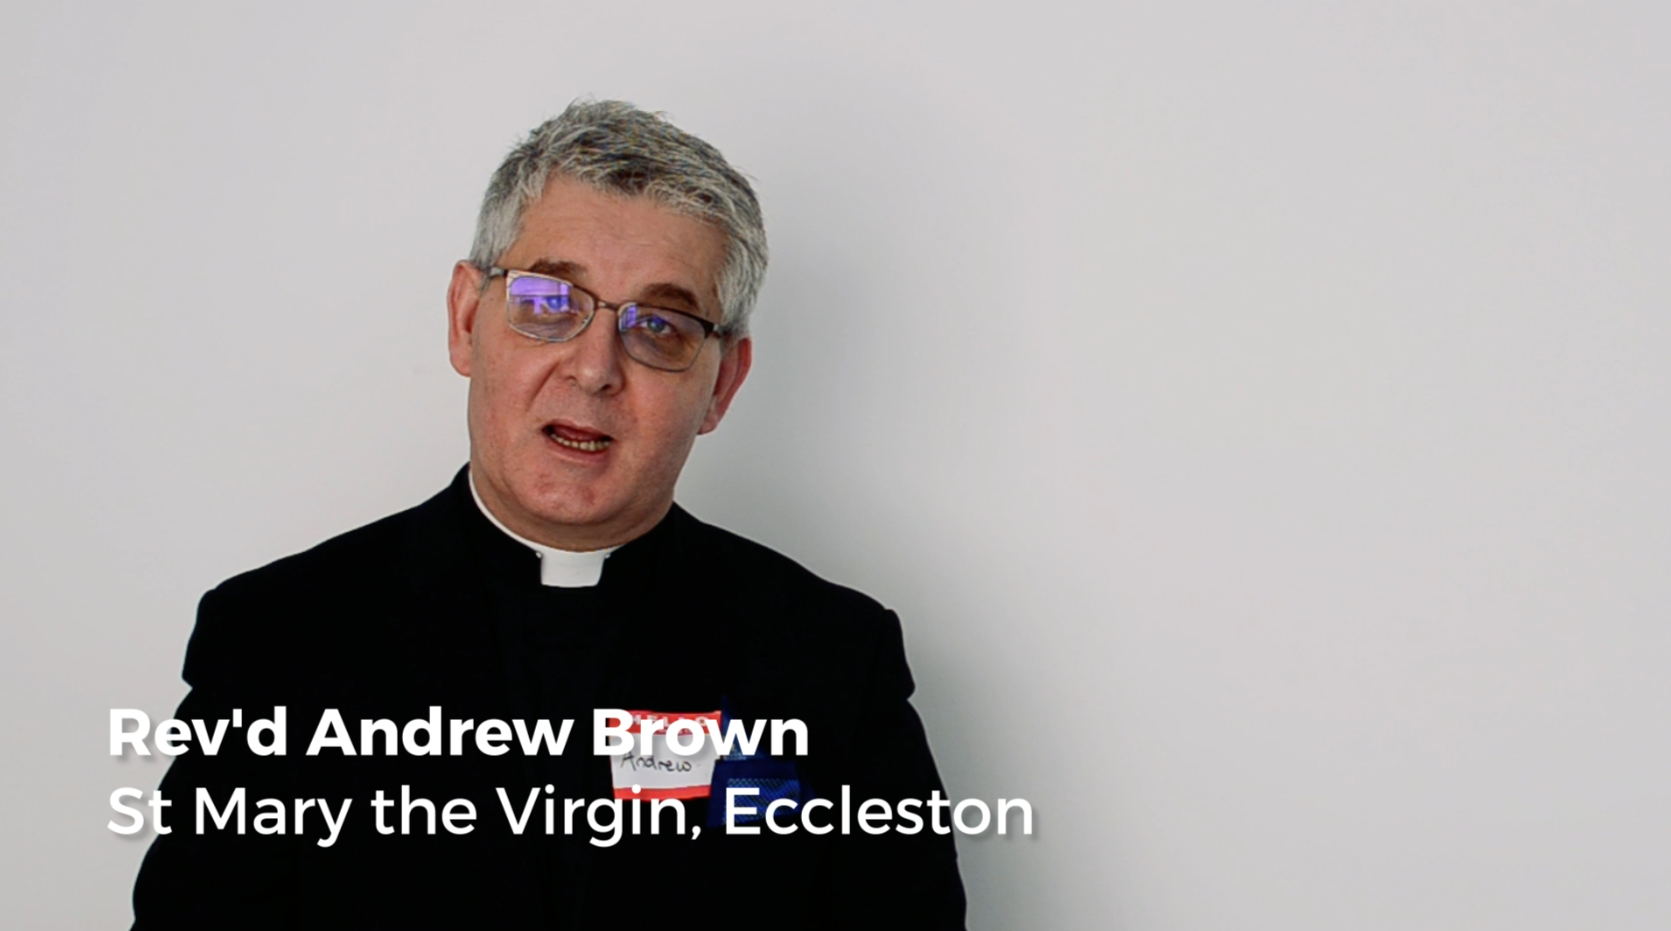 Father Andrew Brown